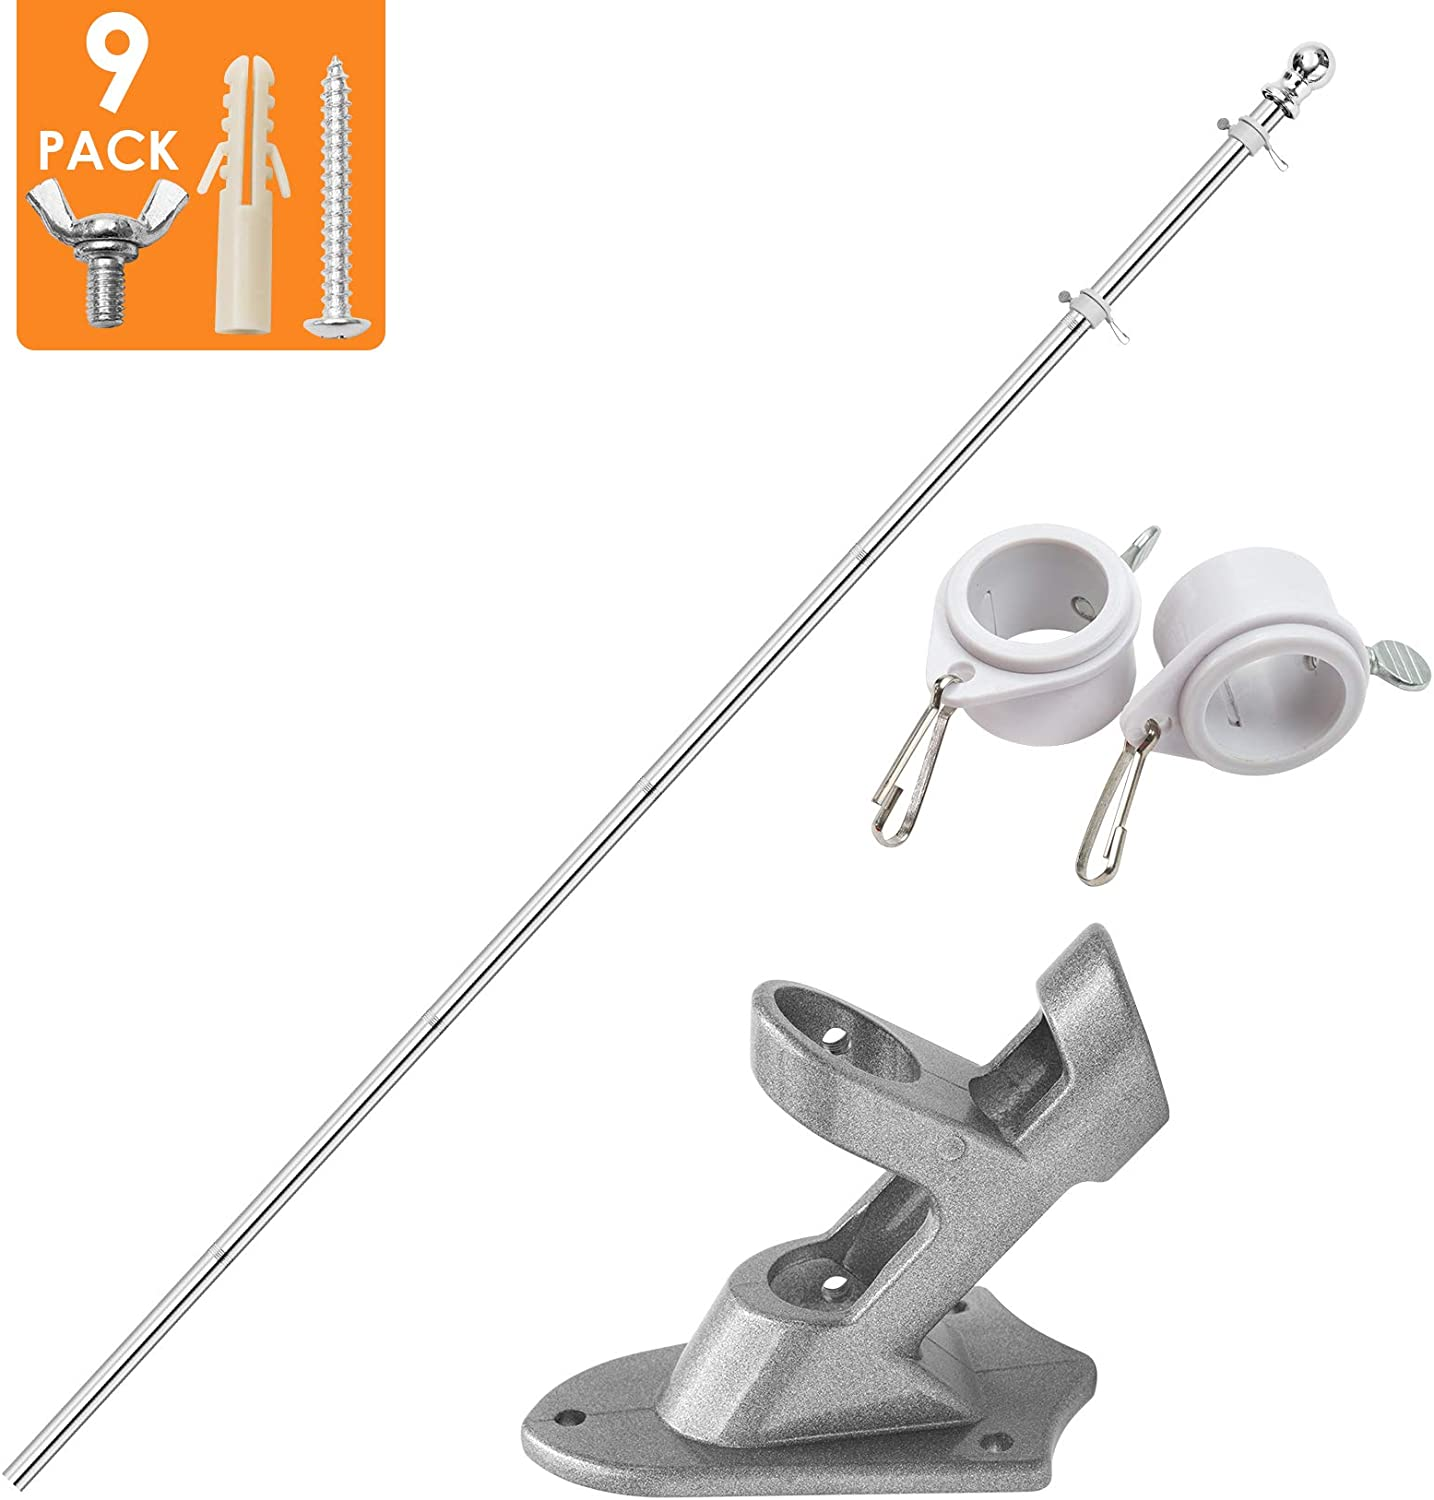 Quarut Flag Pole with Bracket - 6 Ft Flagpole Kit,Outdoor Wall Mounted Professional Stainless Steel Tangle Free Flagpole,Poleapply to for Yard Or Garden Residential Commercial (Silver)